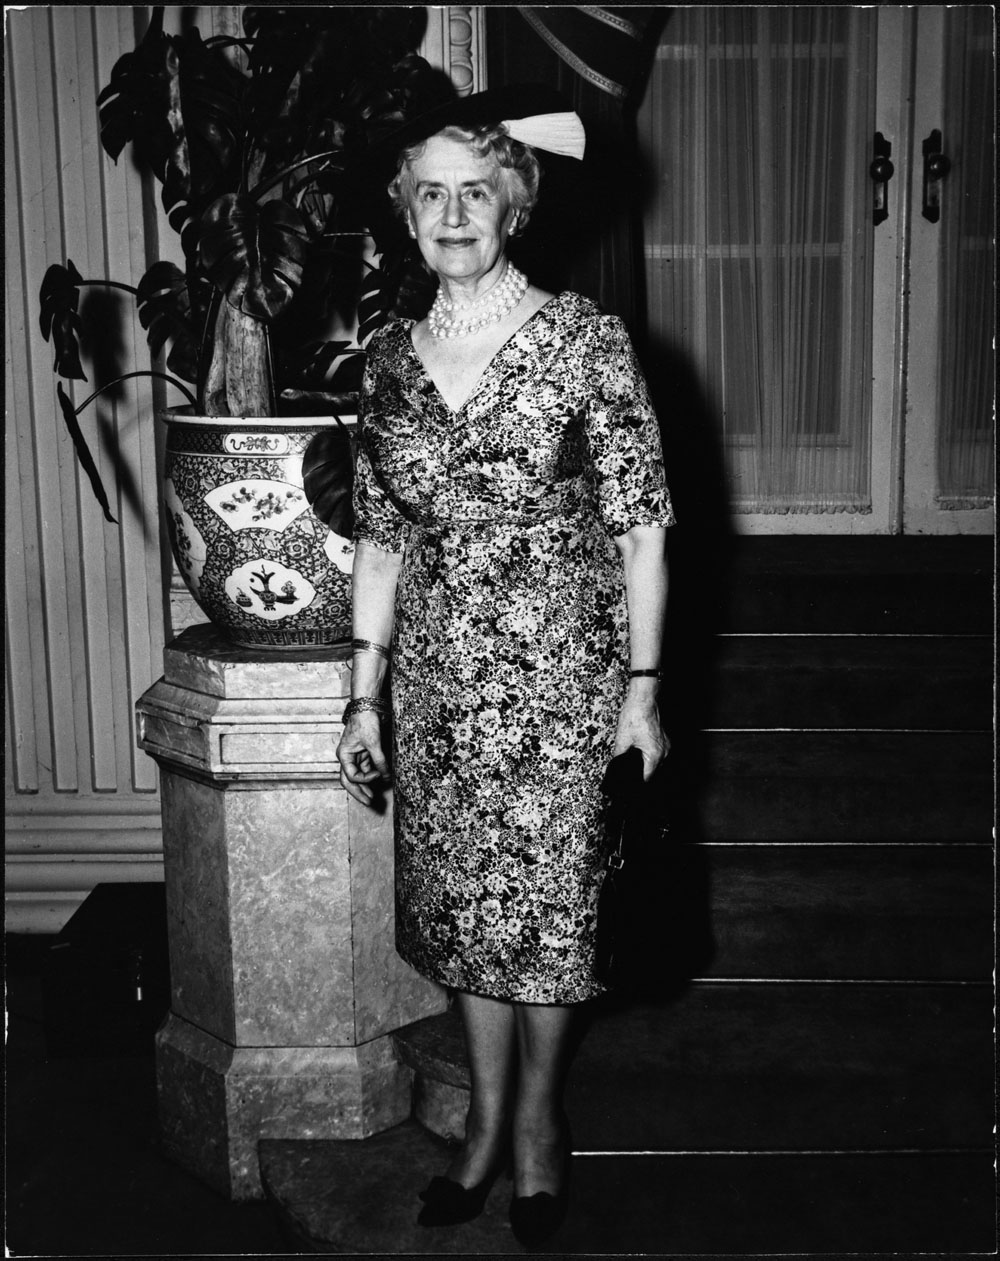 Woman in a dress, standing in front of a stair case.